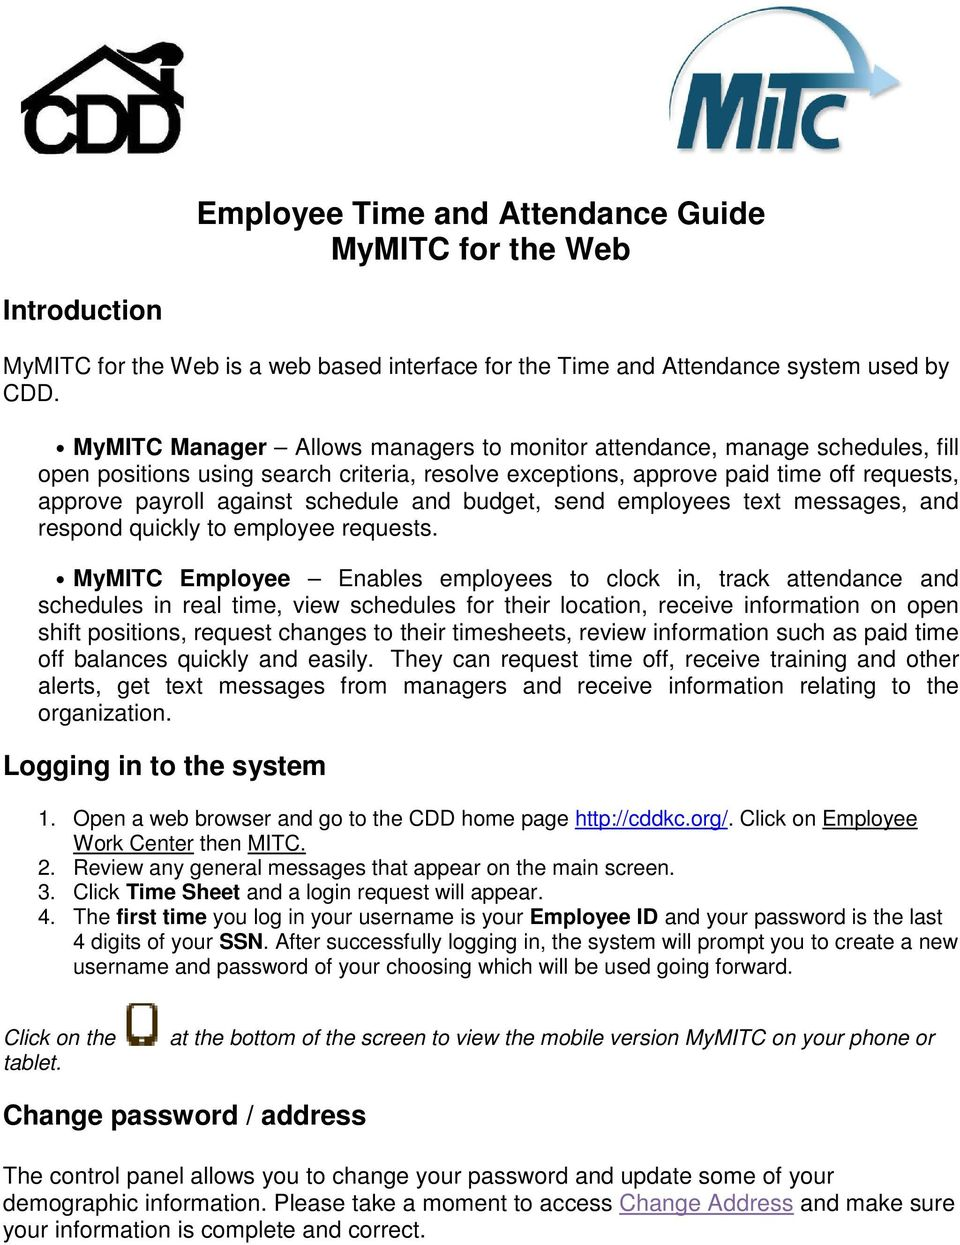 employee time and attendance guide mymitc for the web pdf